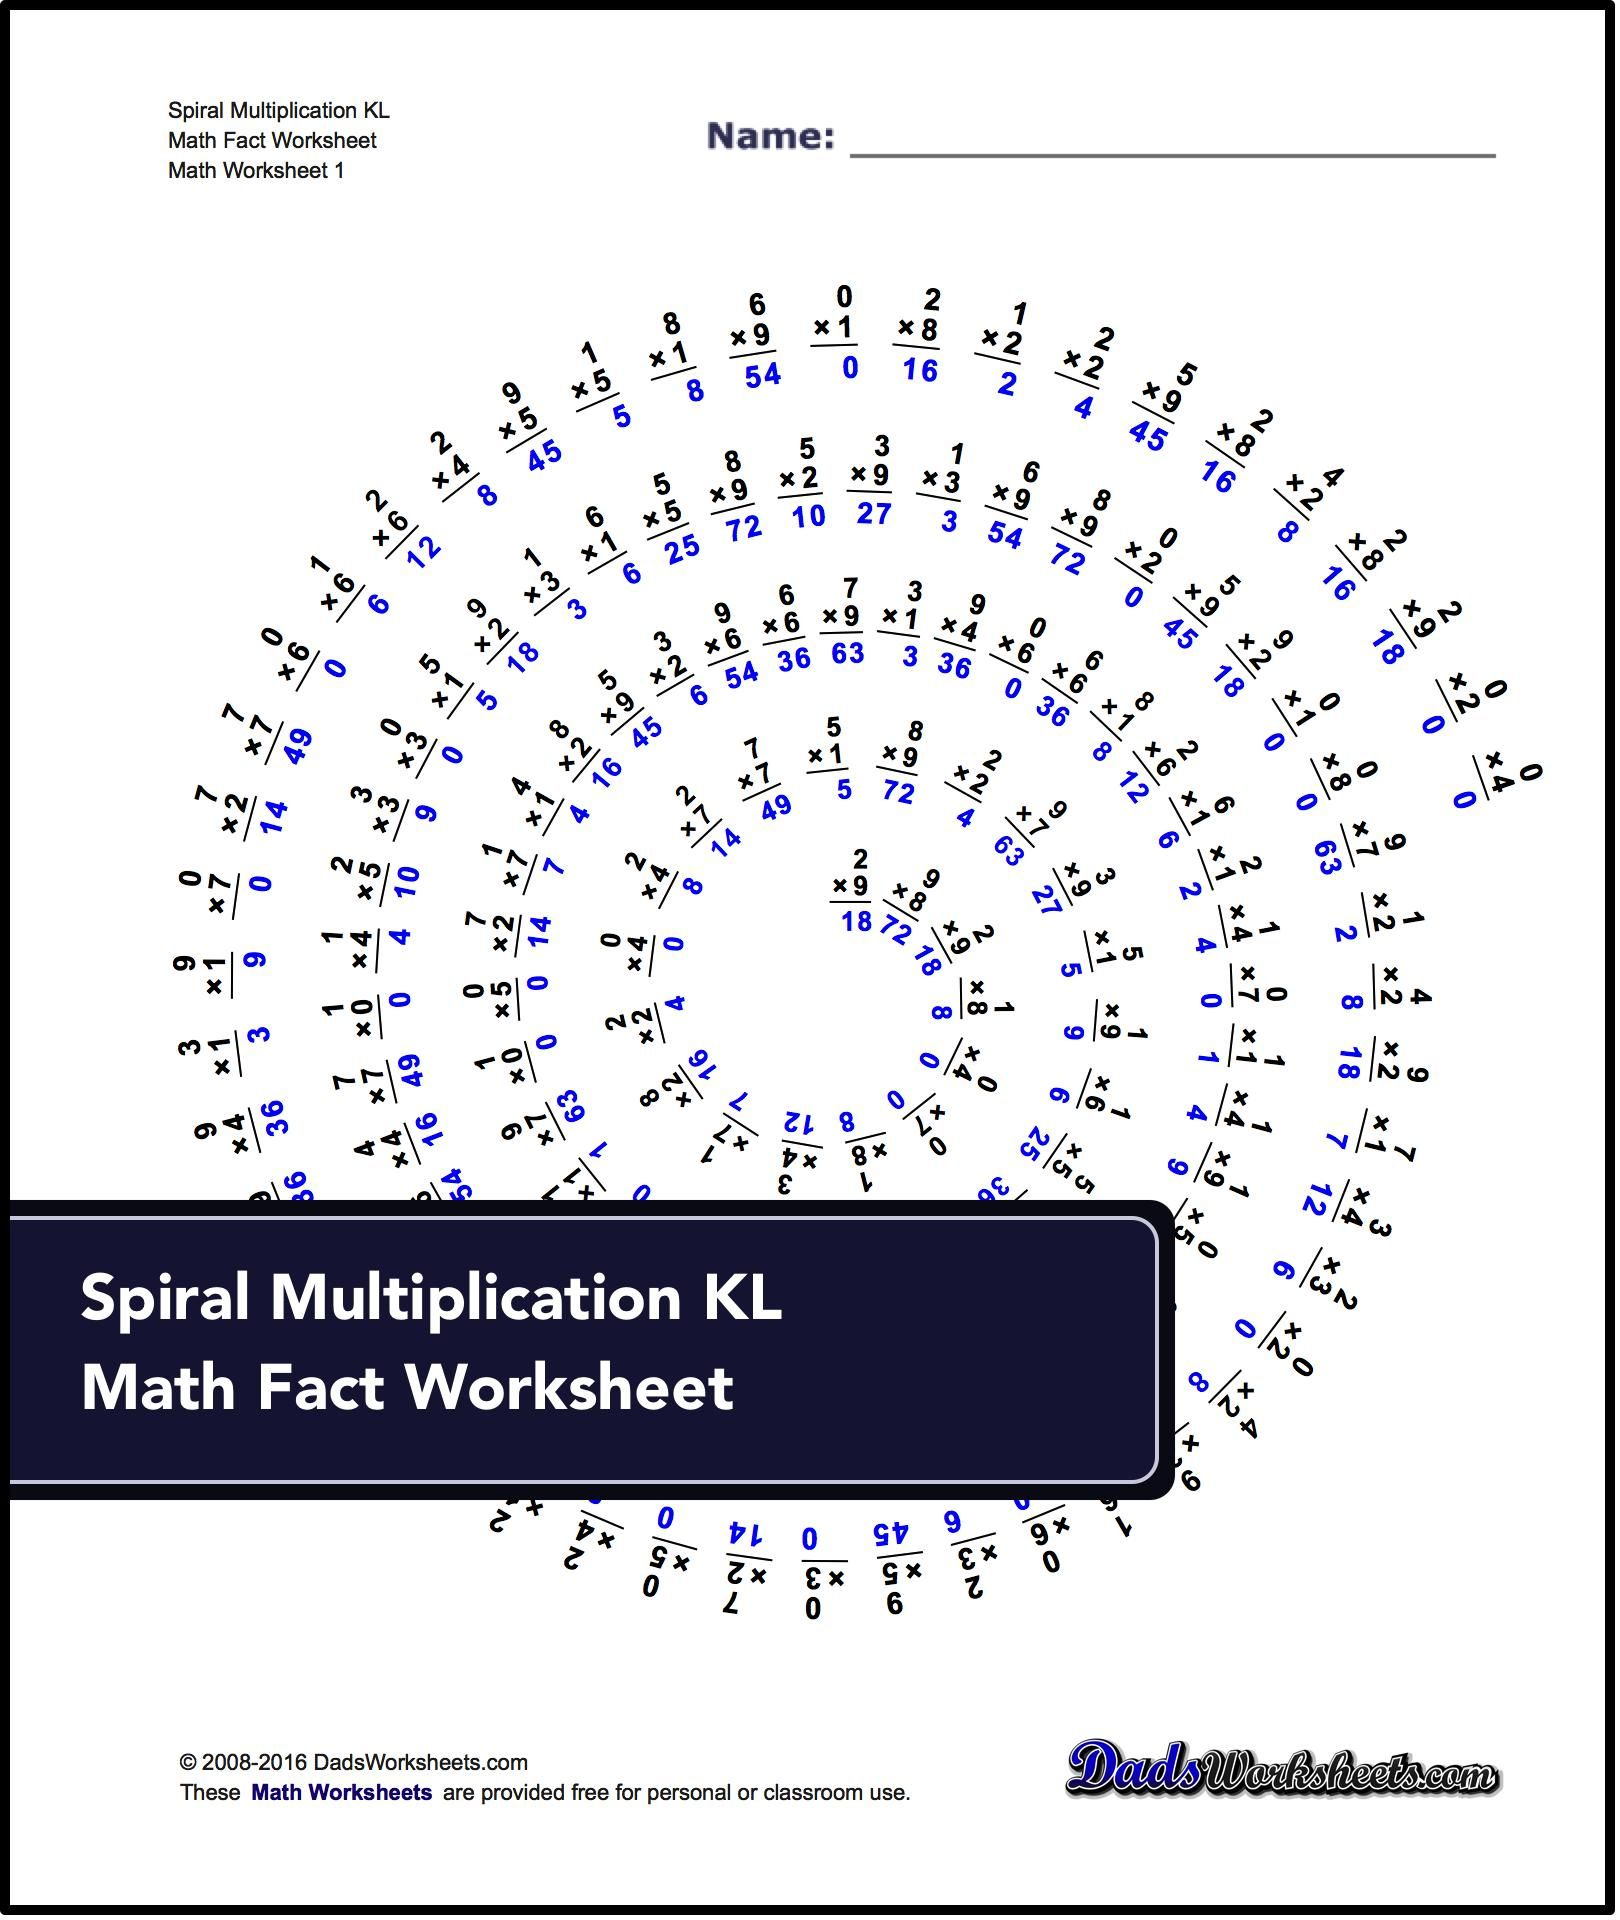 Multiplication Worksheets For Spiral Multiplication Kl